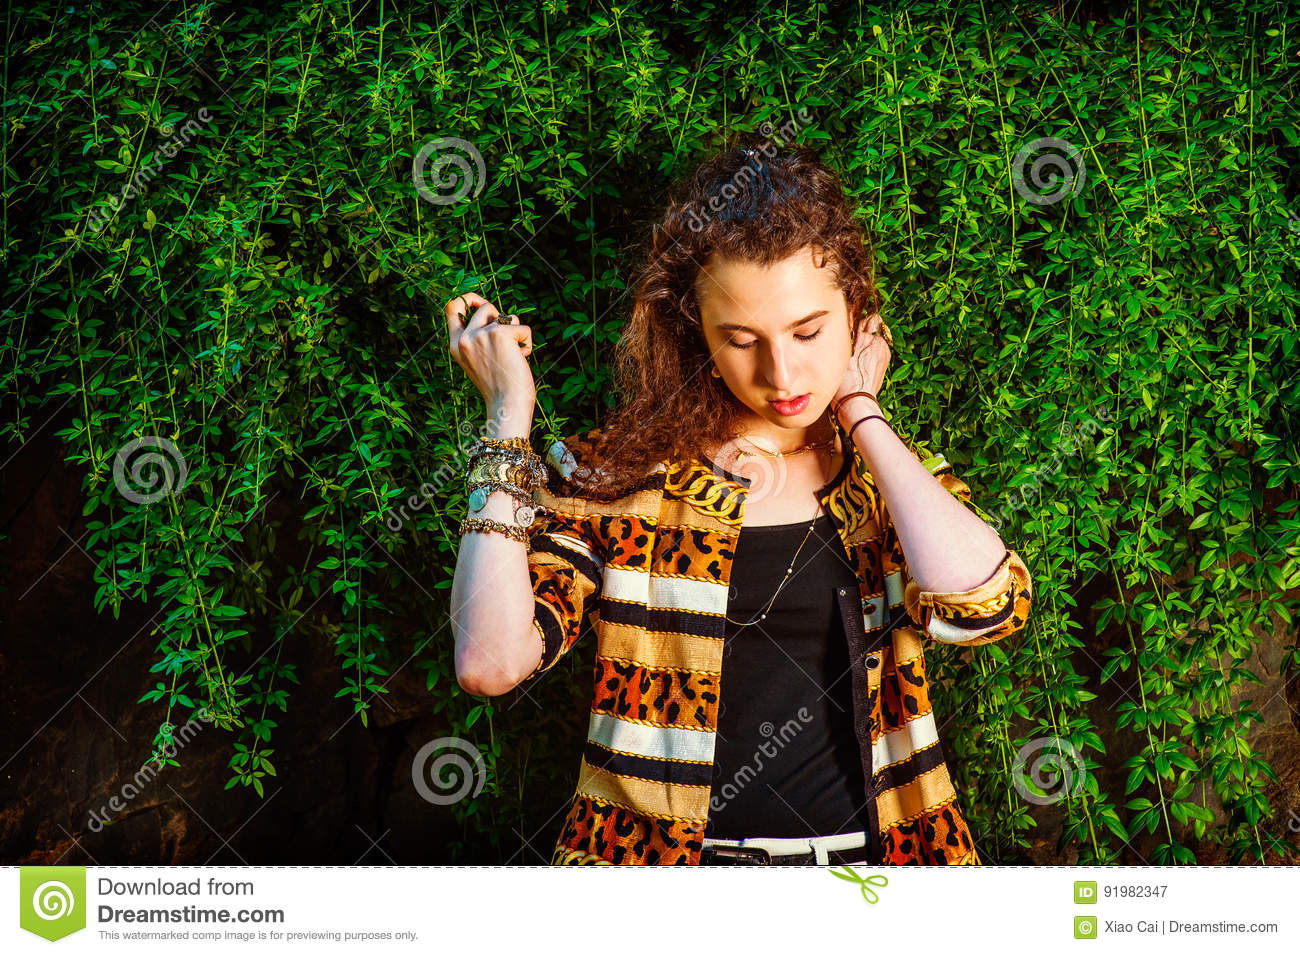 de2db81c36b Dressing in black under wear, patterned fashion jacket, hands holding  leaves, a teenager girl with curly long hair is standing by planted wall,  looking down ...